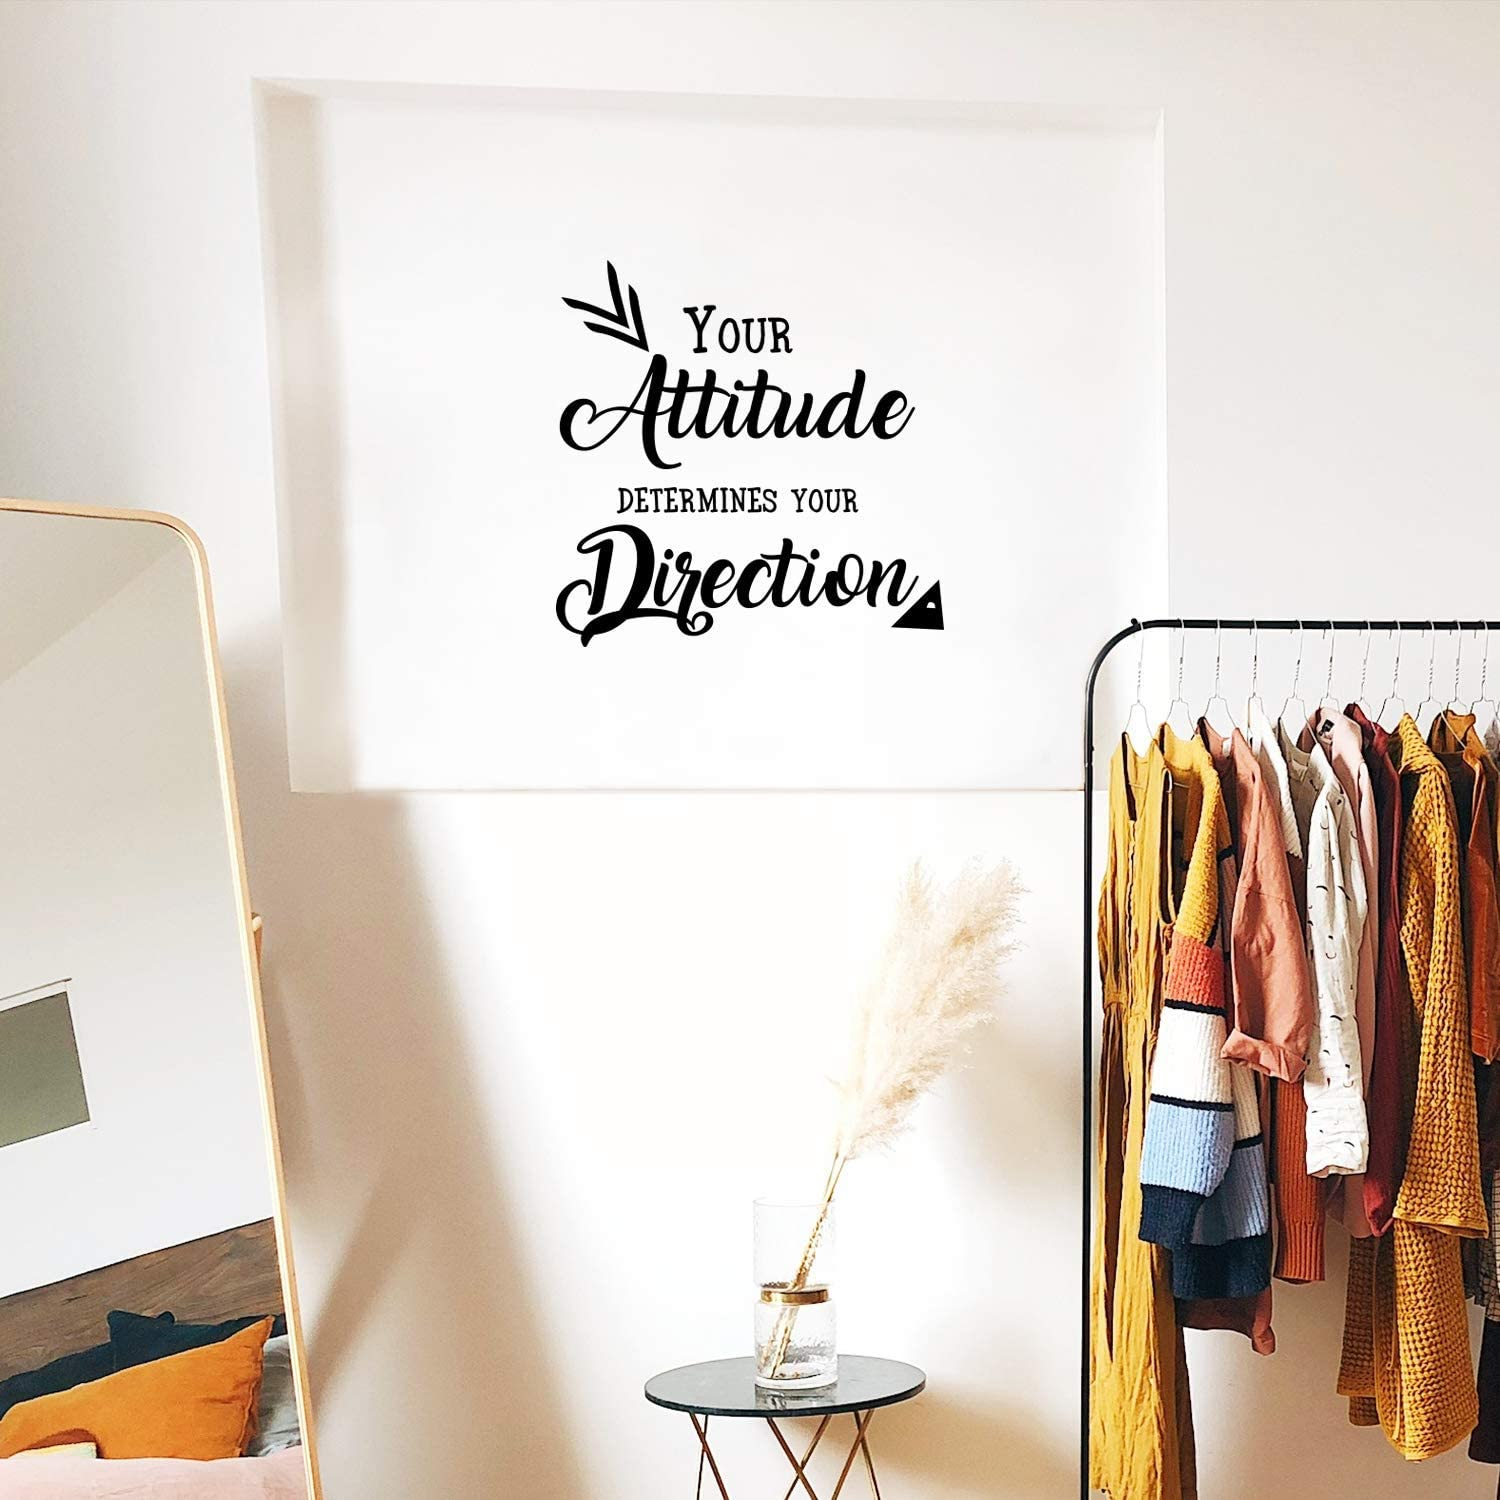 Amazon Com Your Attitude Determines Your Direction Inspirational Quote Wall Art Decal 23 X 23 Motivational Life Quotes Vinyl Decal Bedroom Wall Decoration Living Room Wall Art